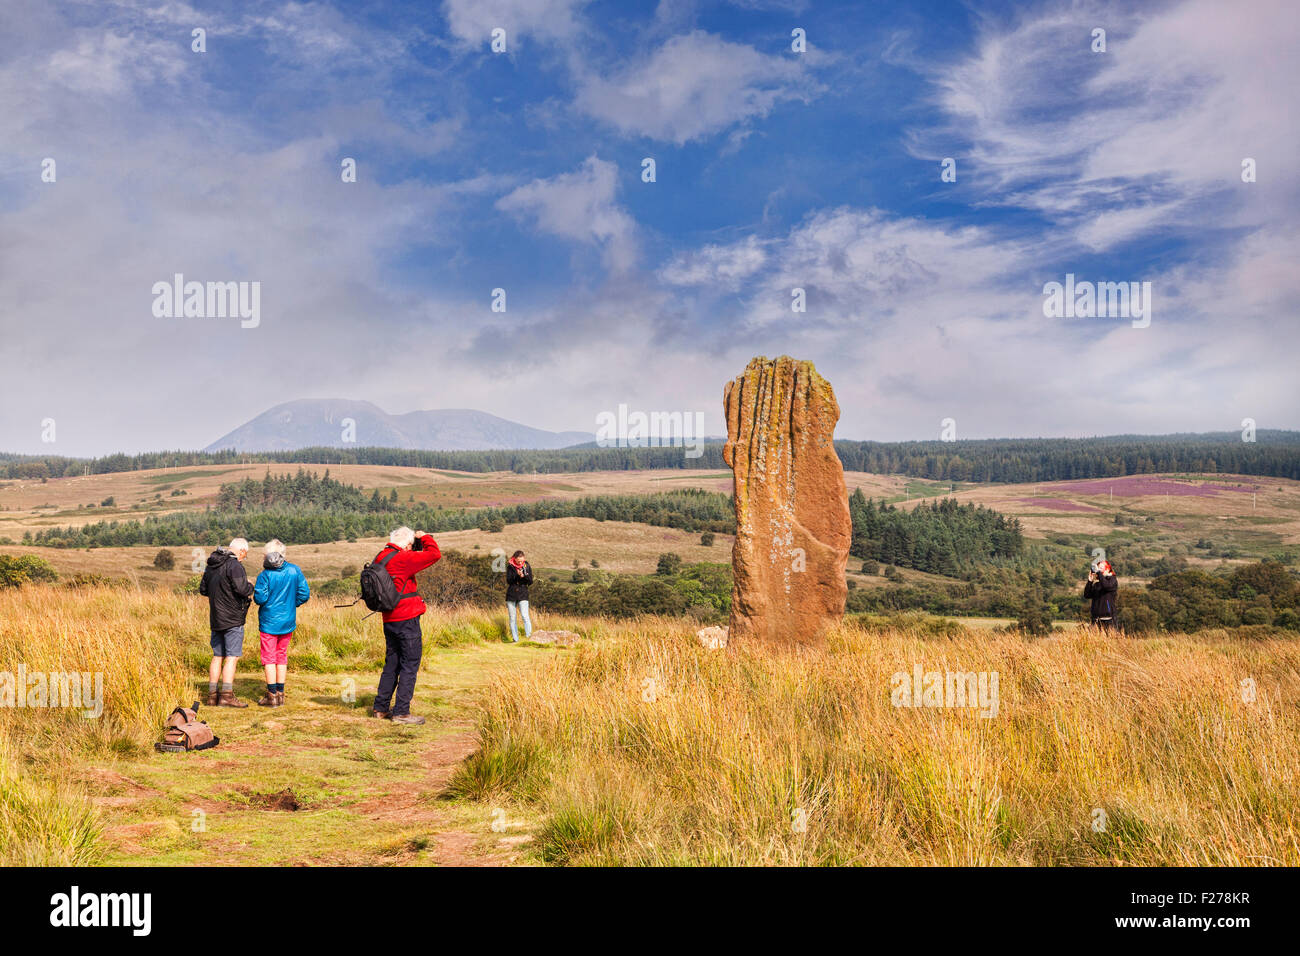 Tourists taking photos of one of the standing stones on Machrie Moor, Arran, North Ayrshire, Scotland. - Stock Image